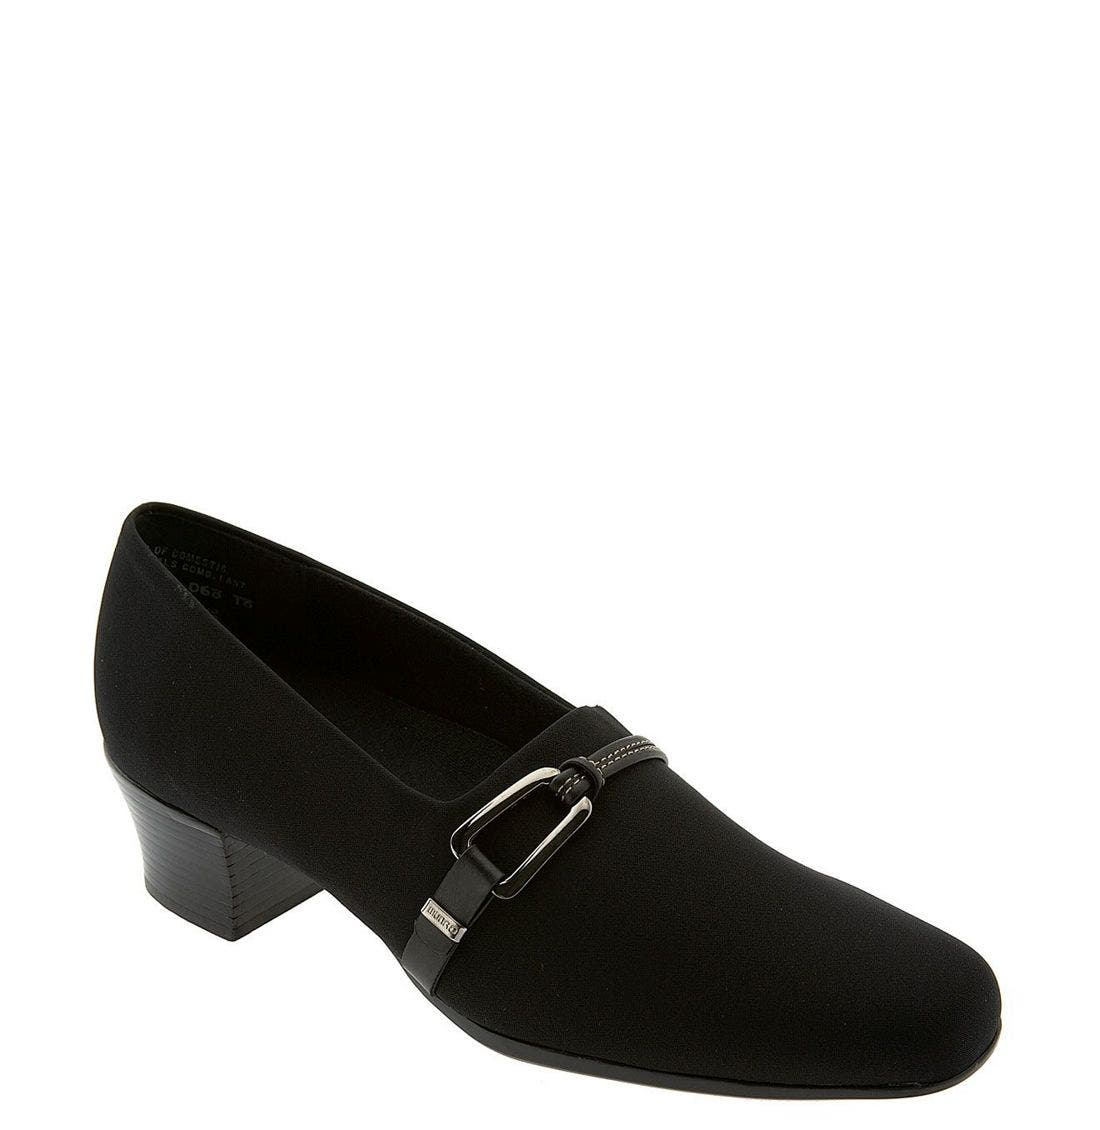 MUNRO 'Cindi' Pump, Main, color, BLACK STRETCH FABRIC